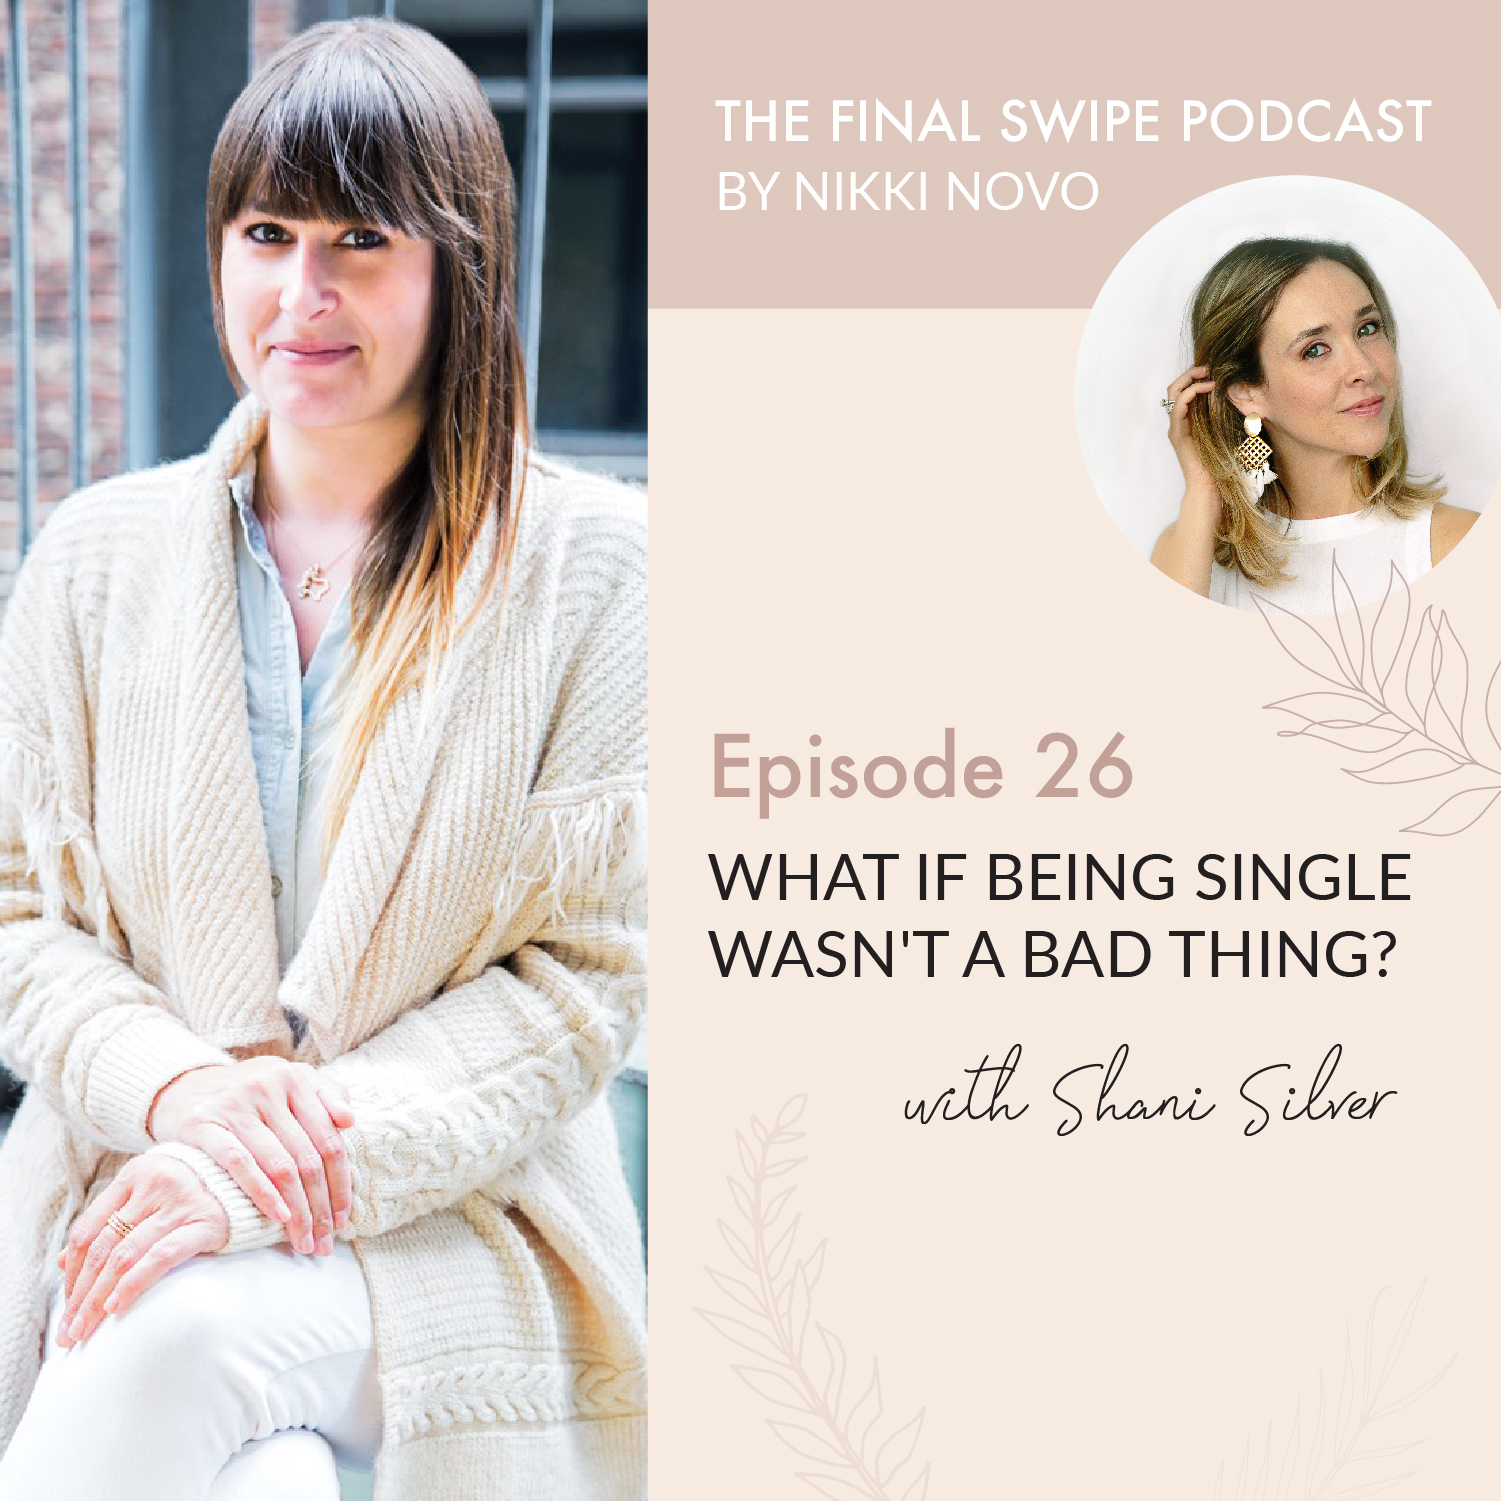 The Final Swipe - Guest on Nikki Novo's podcast, discussing making a change to the way we view being single, and enjoying this time in our lives.